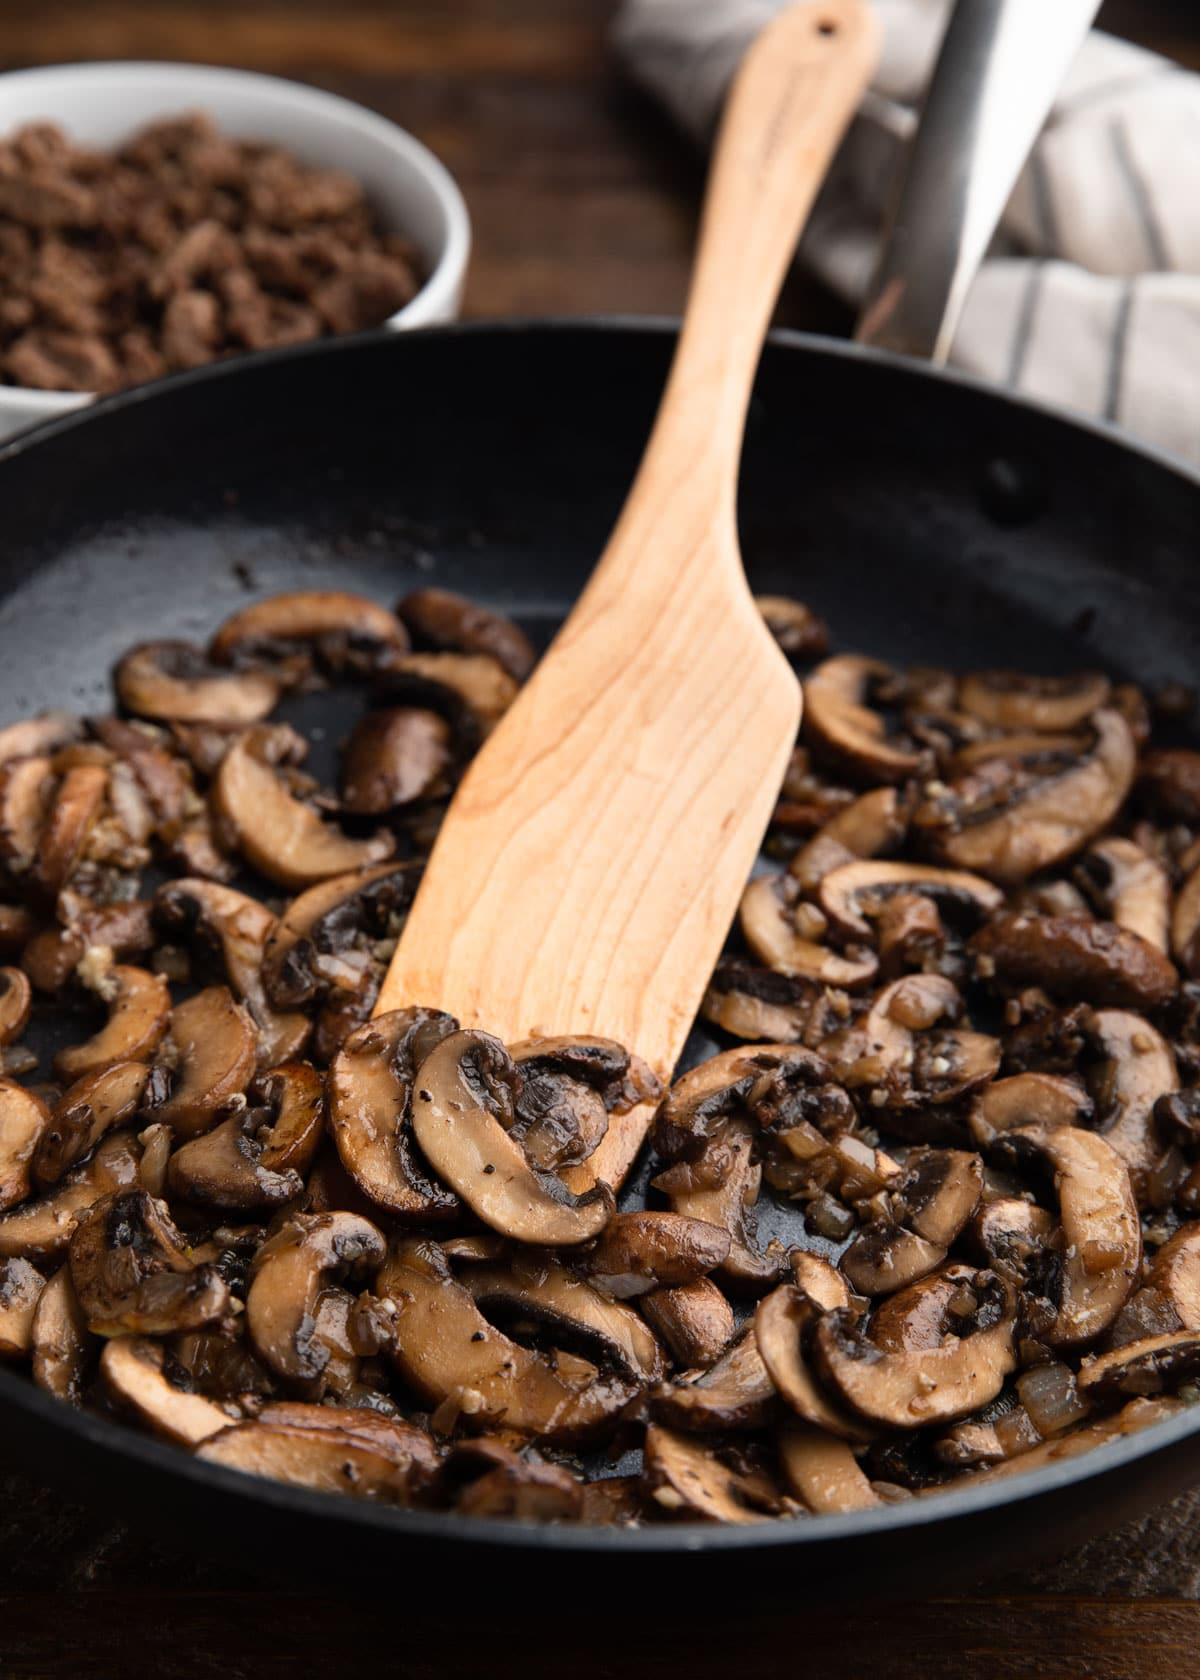 sauteed mushrooms in a nonstick skillet with a wooden spoon